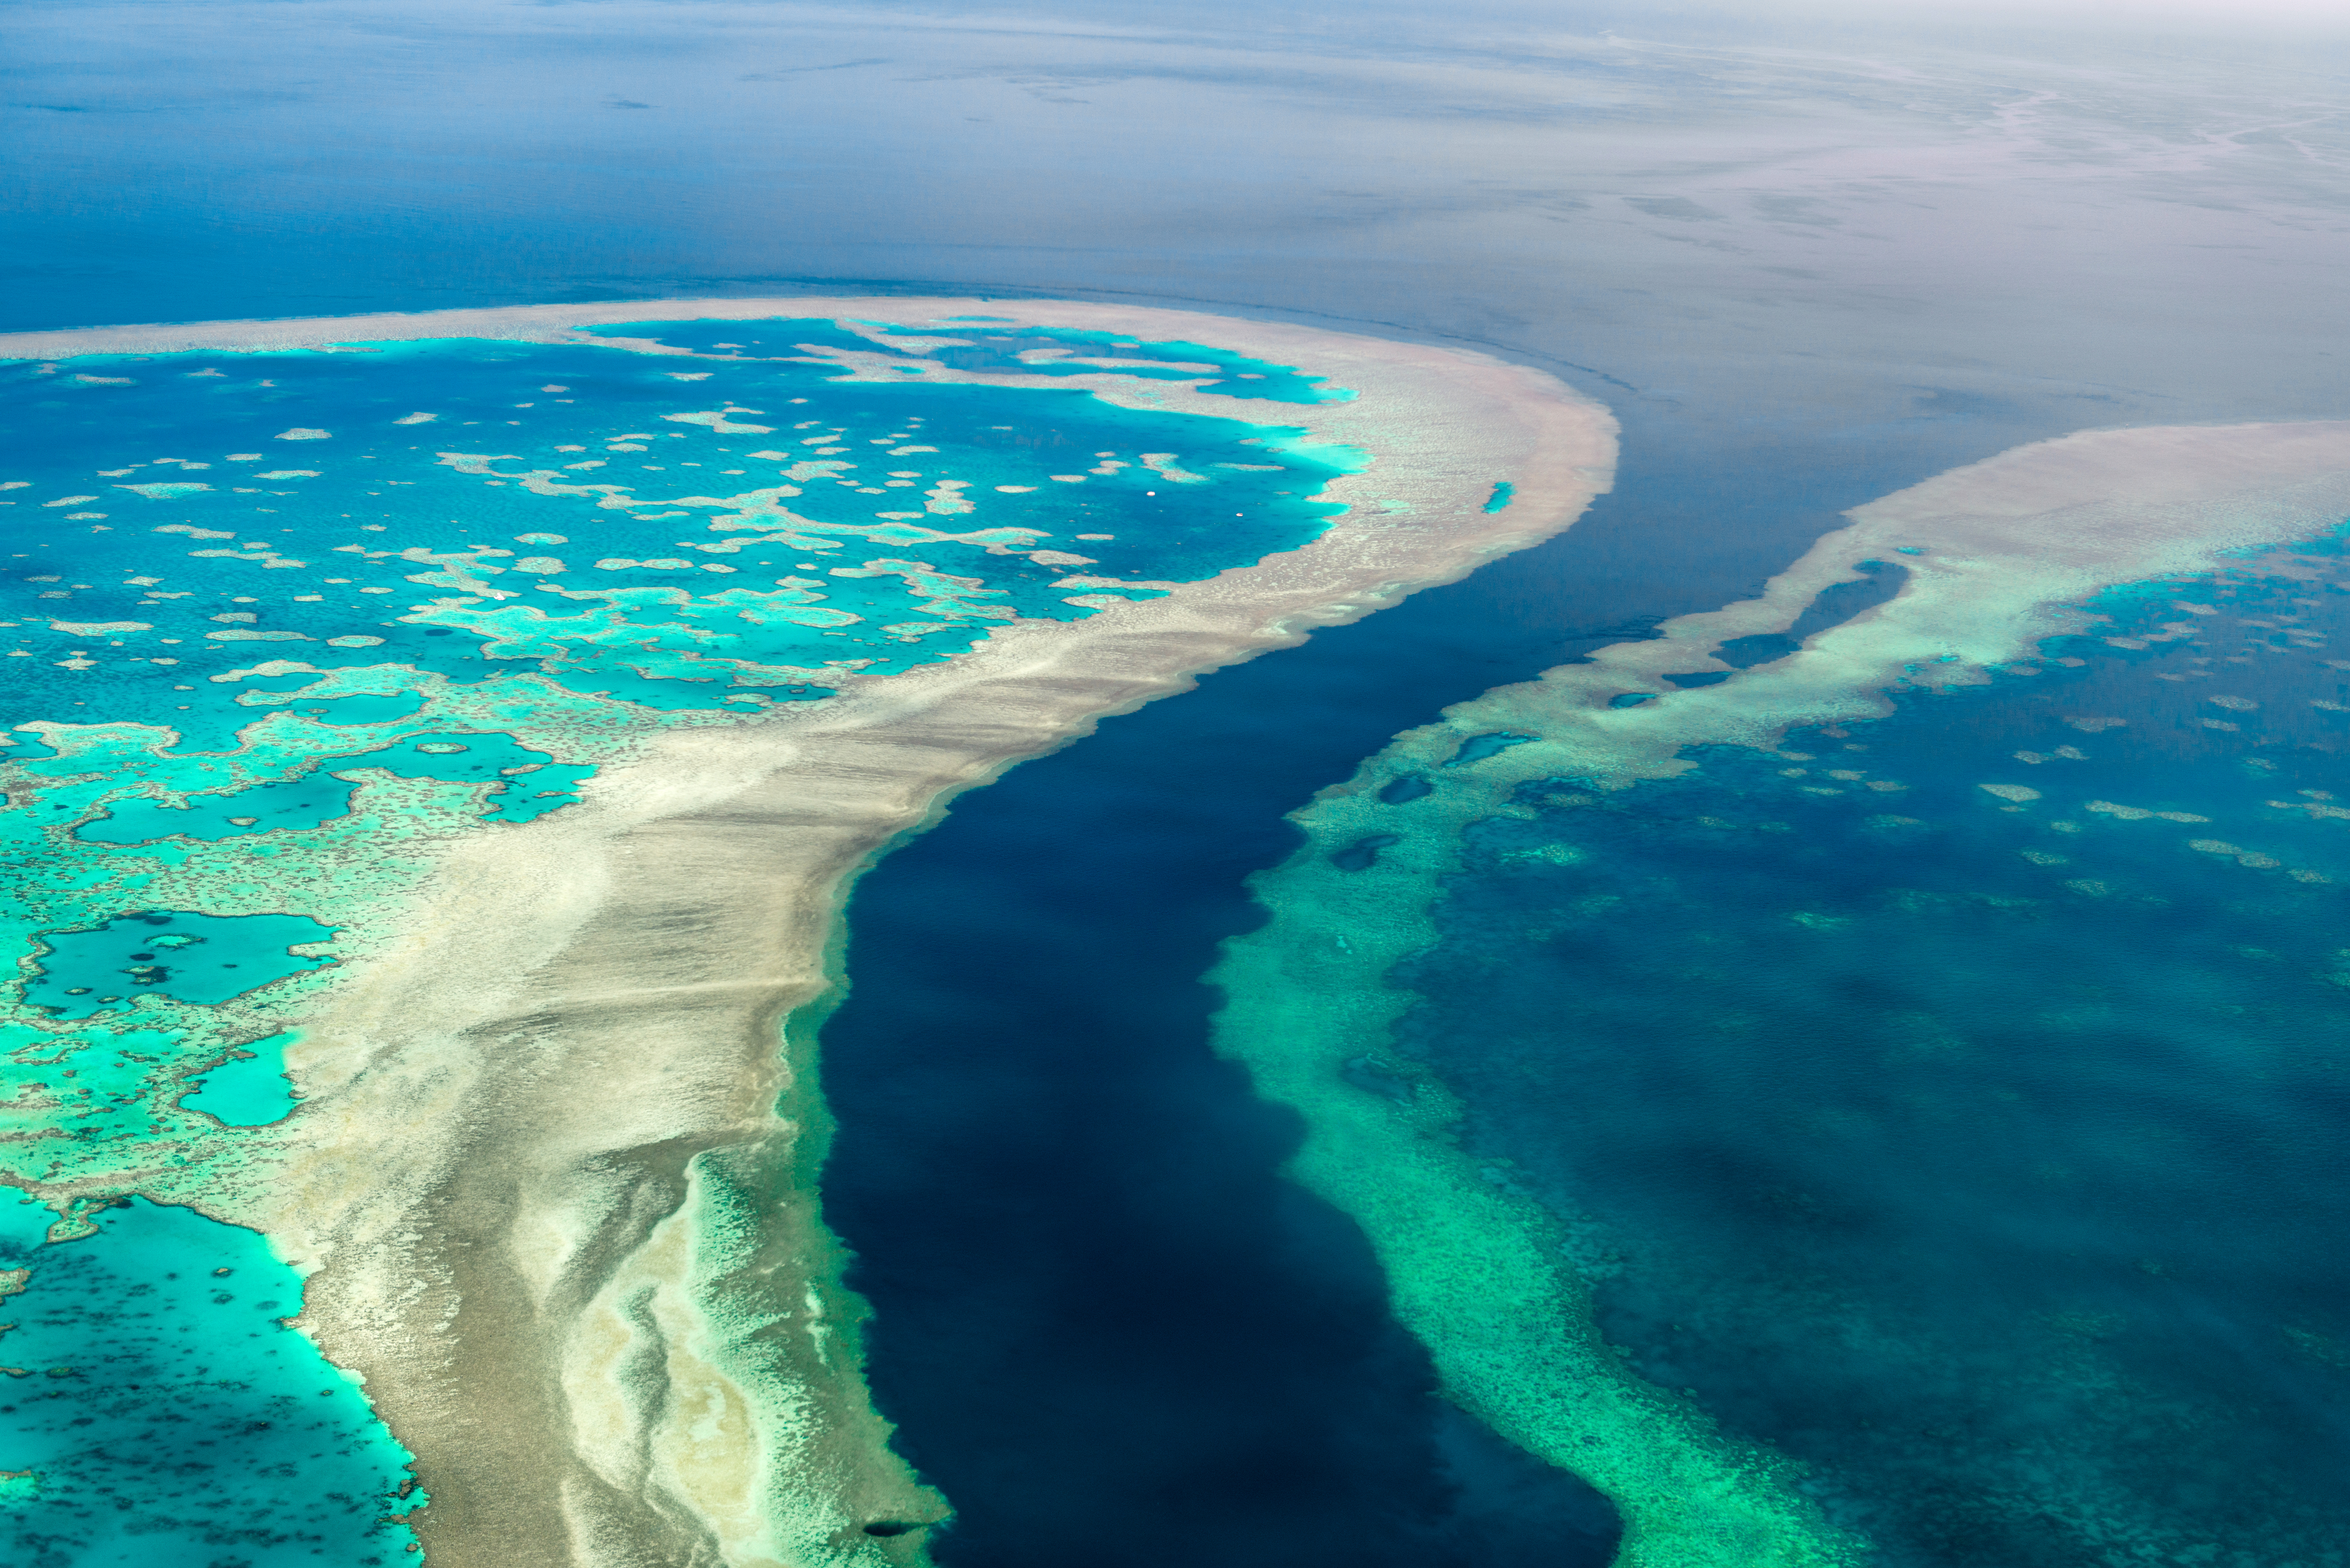 The Great Barrier Reef extends to the Torres Strait Islands